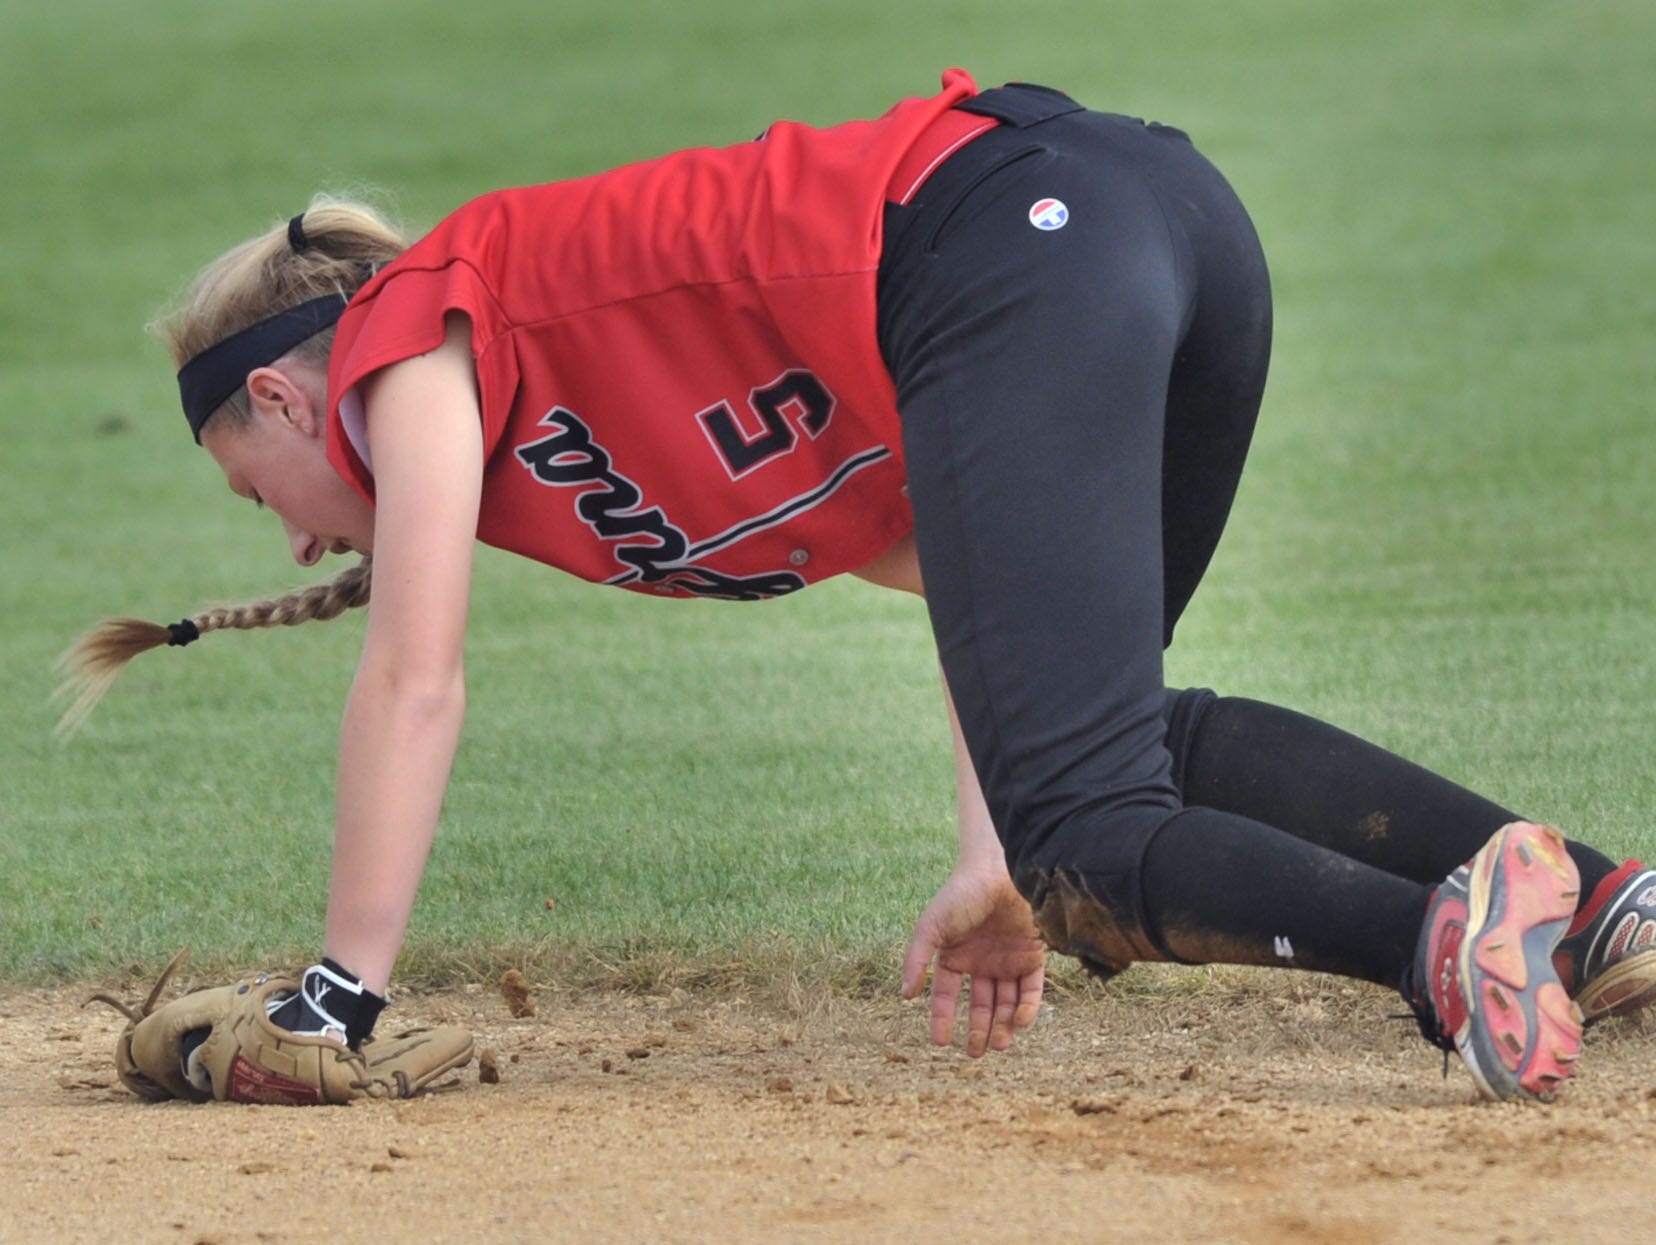 Smyrna second baseman Kristen Fuhr makes a diving attempt to stop a single up the middle in game with Sussex Tech Thursday. Fuhr was injured on the play and had to be replaced.